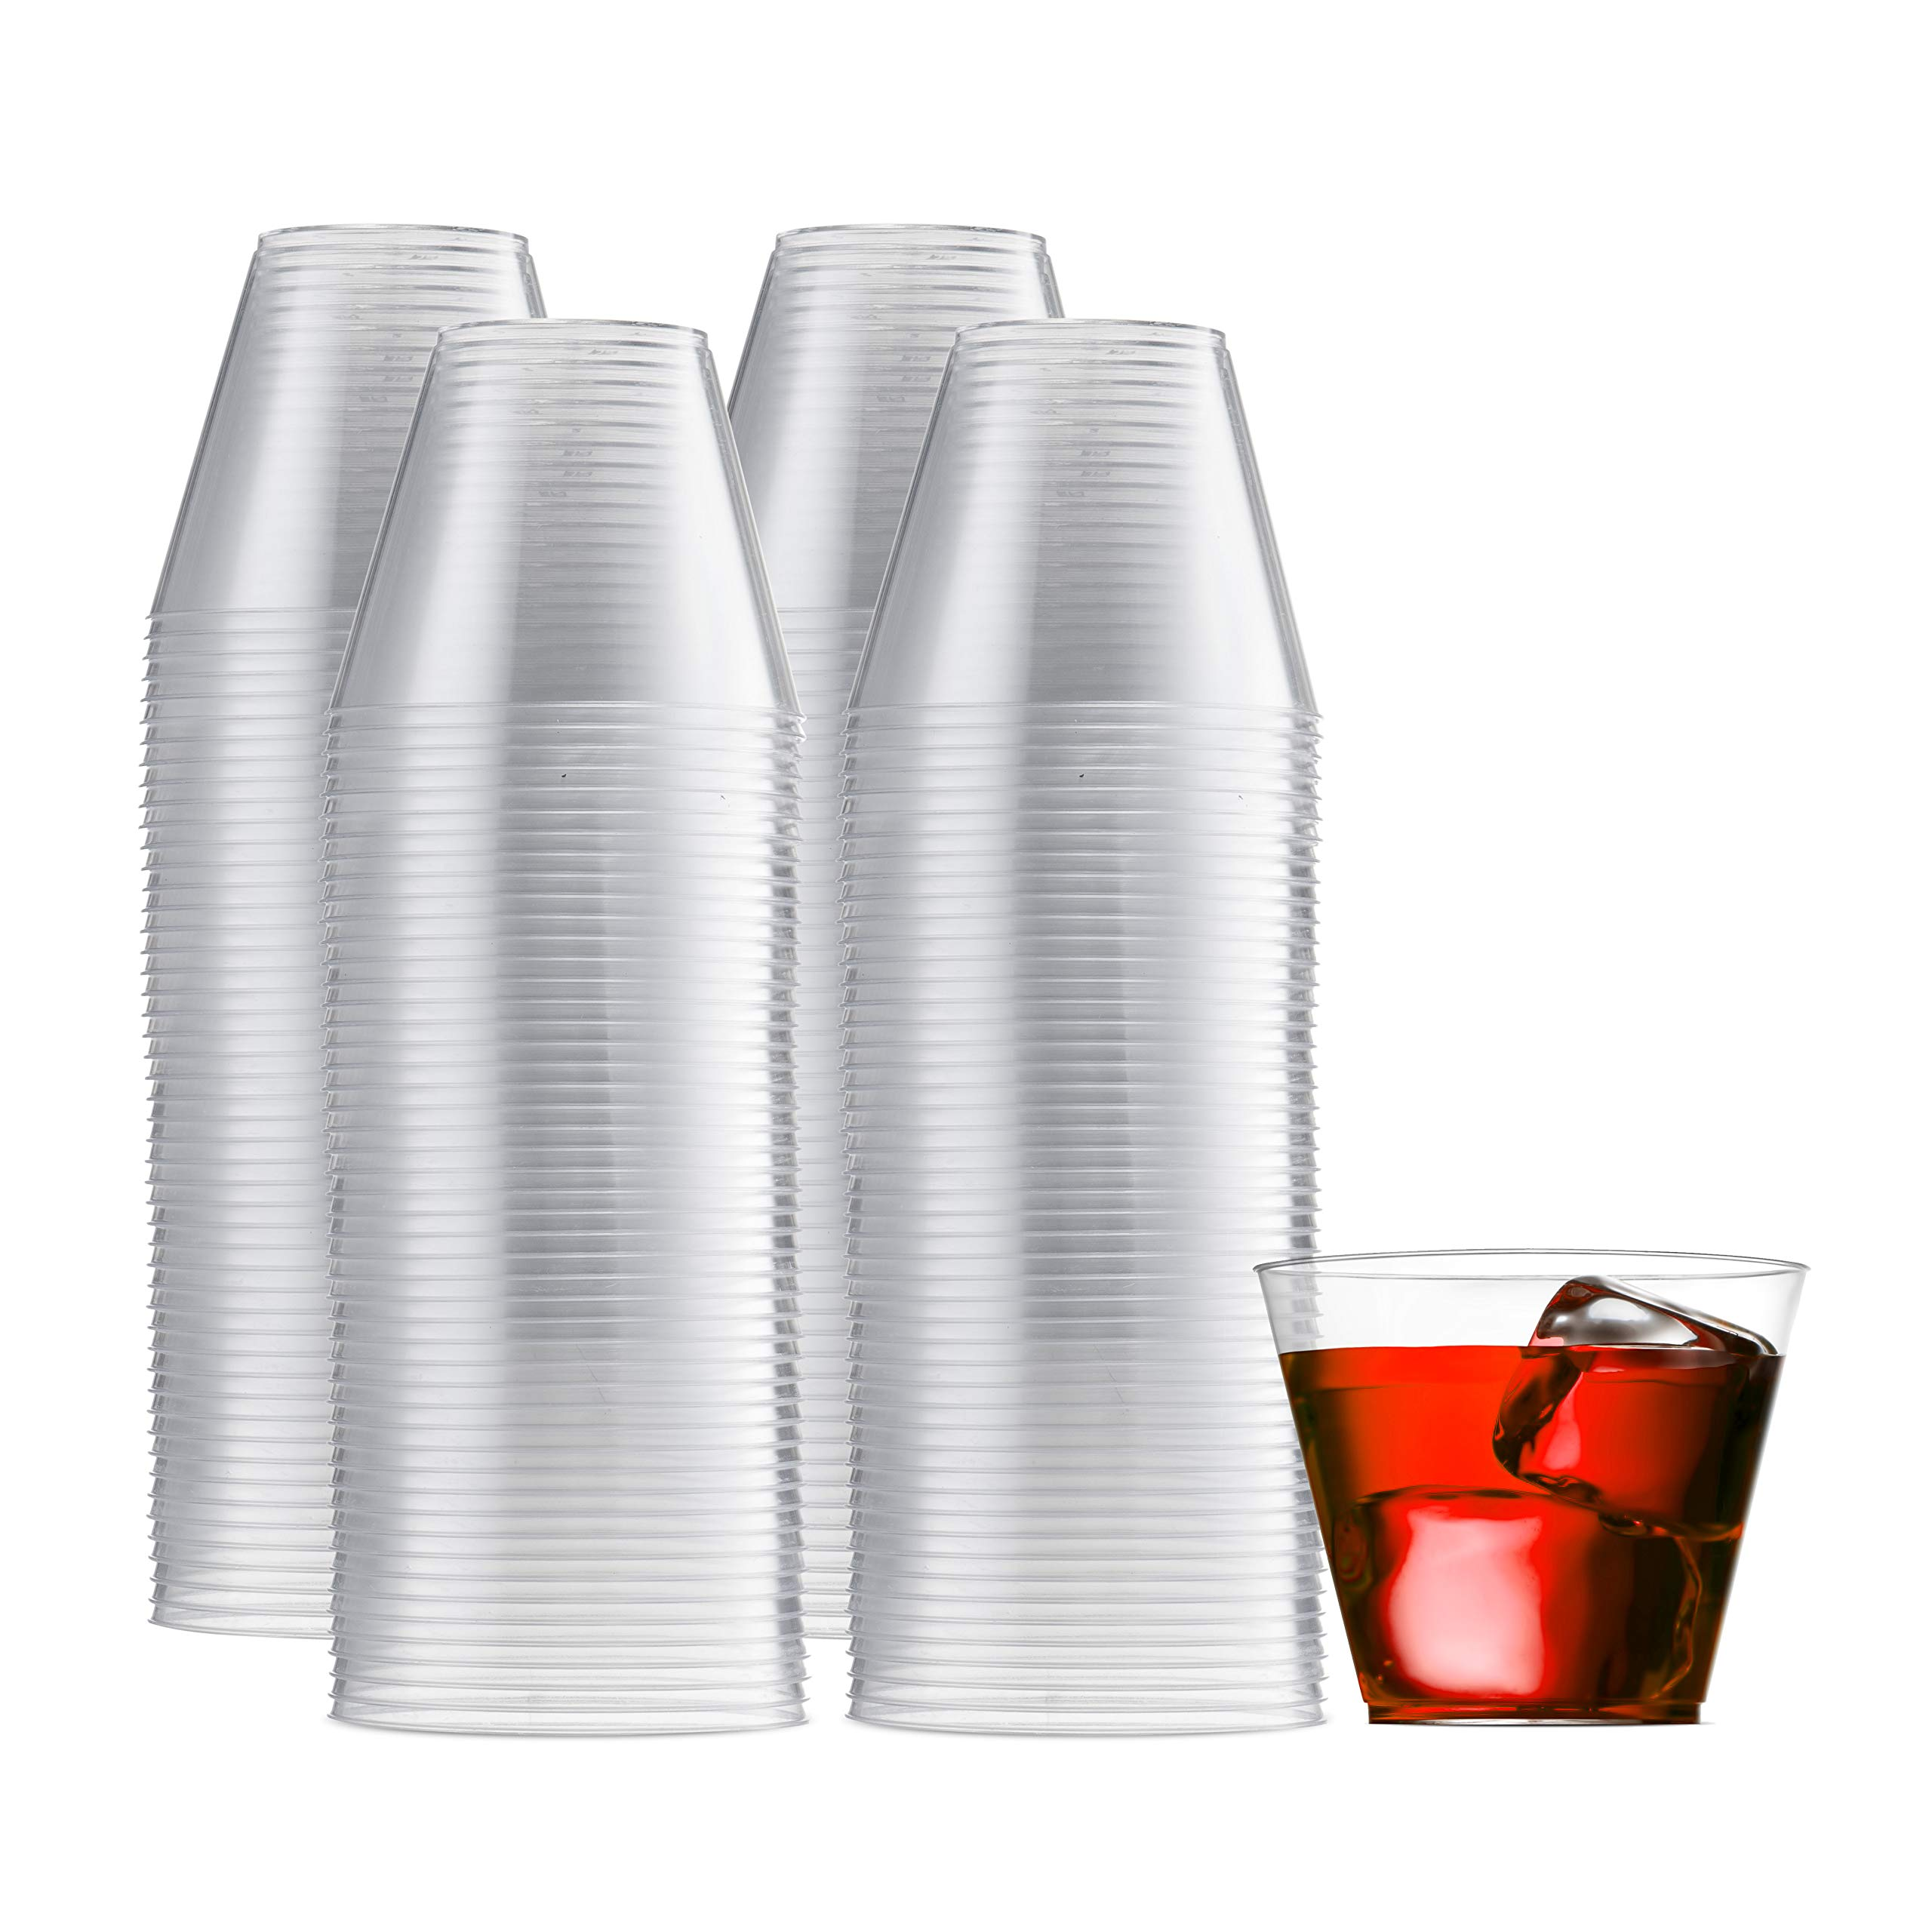 200 Clear Plastic Cups 9 Oz Old Fashioned Tumblers Fancy Disposable Wedding Party Cups Recyclable and BPA-Free